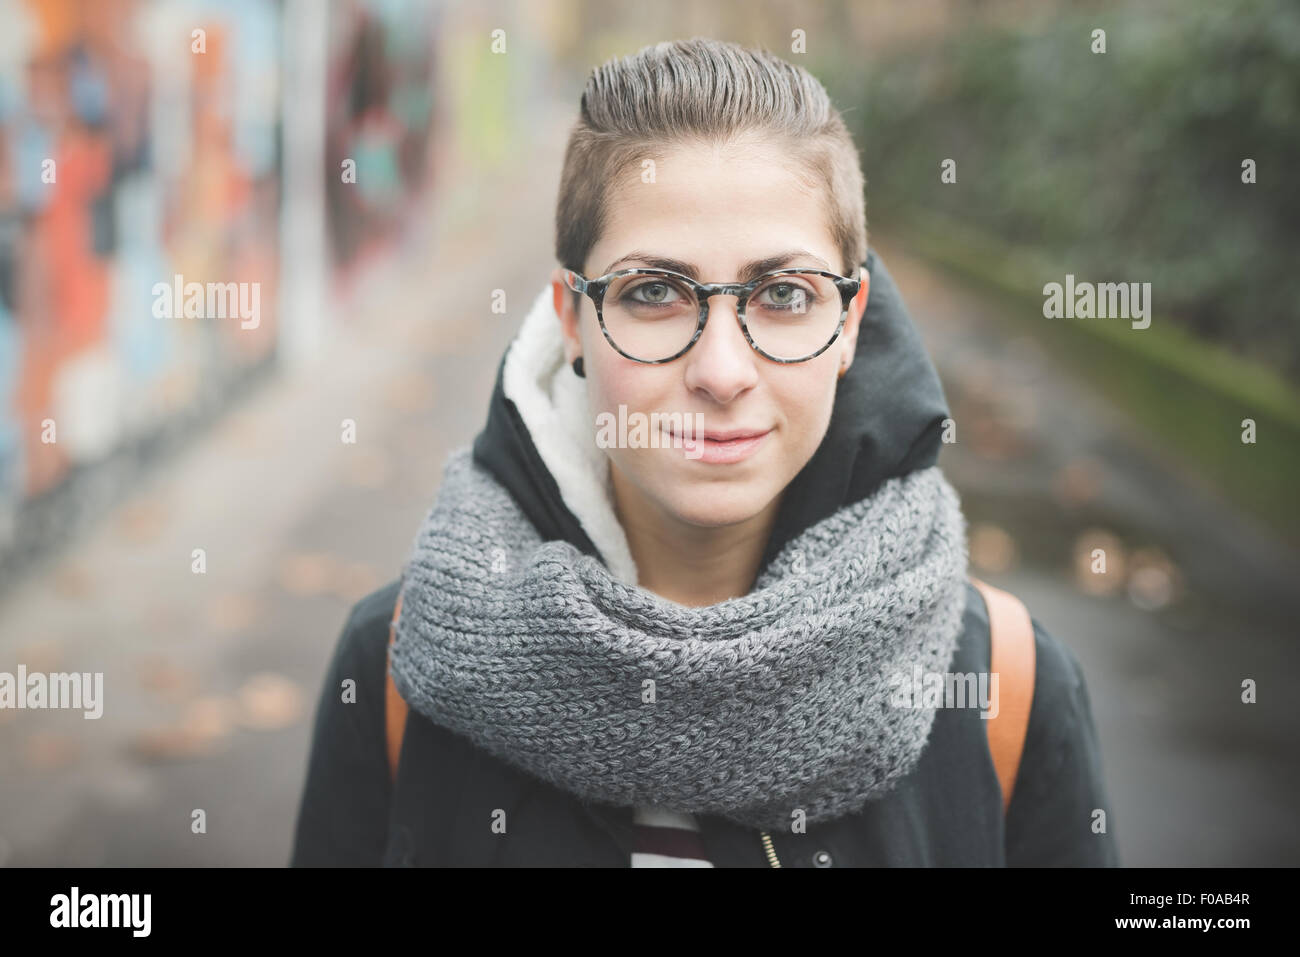 Teenager on street, graffiti wall in background - Stock Image